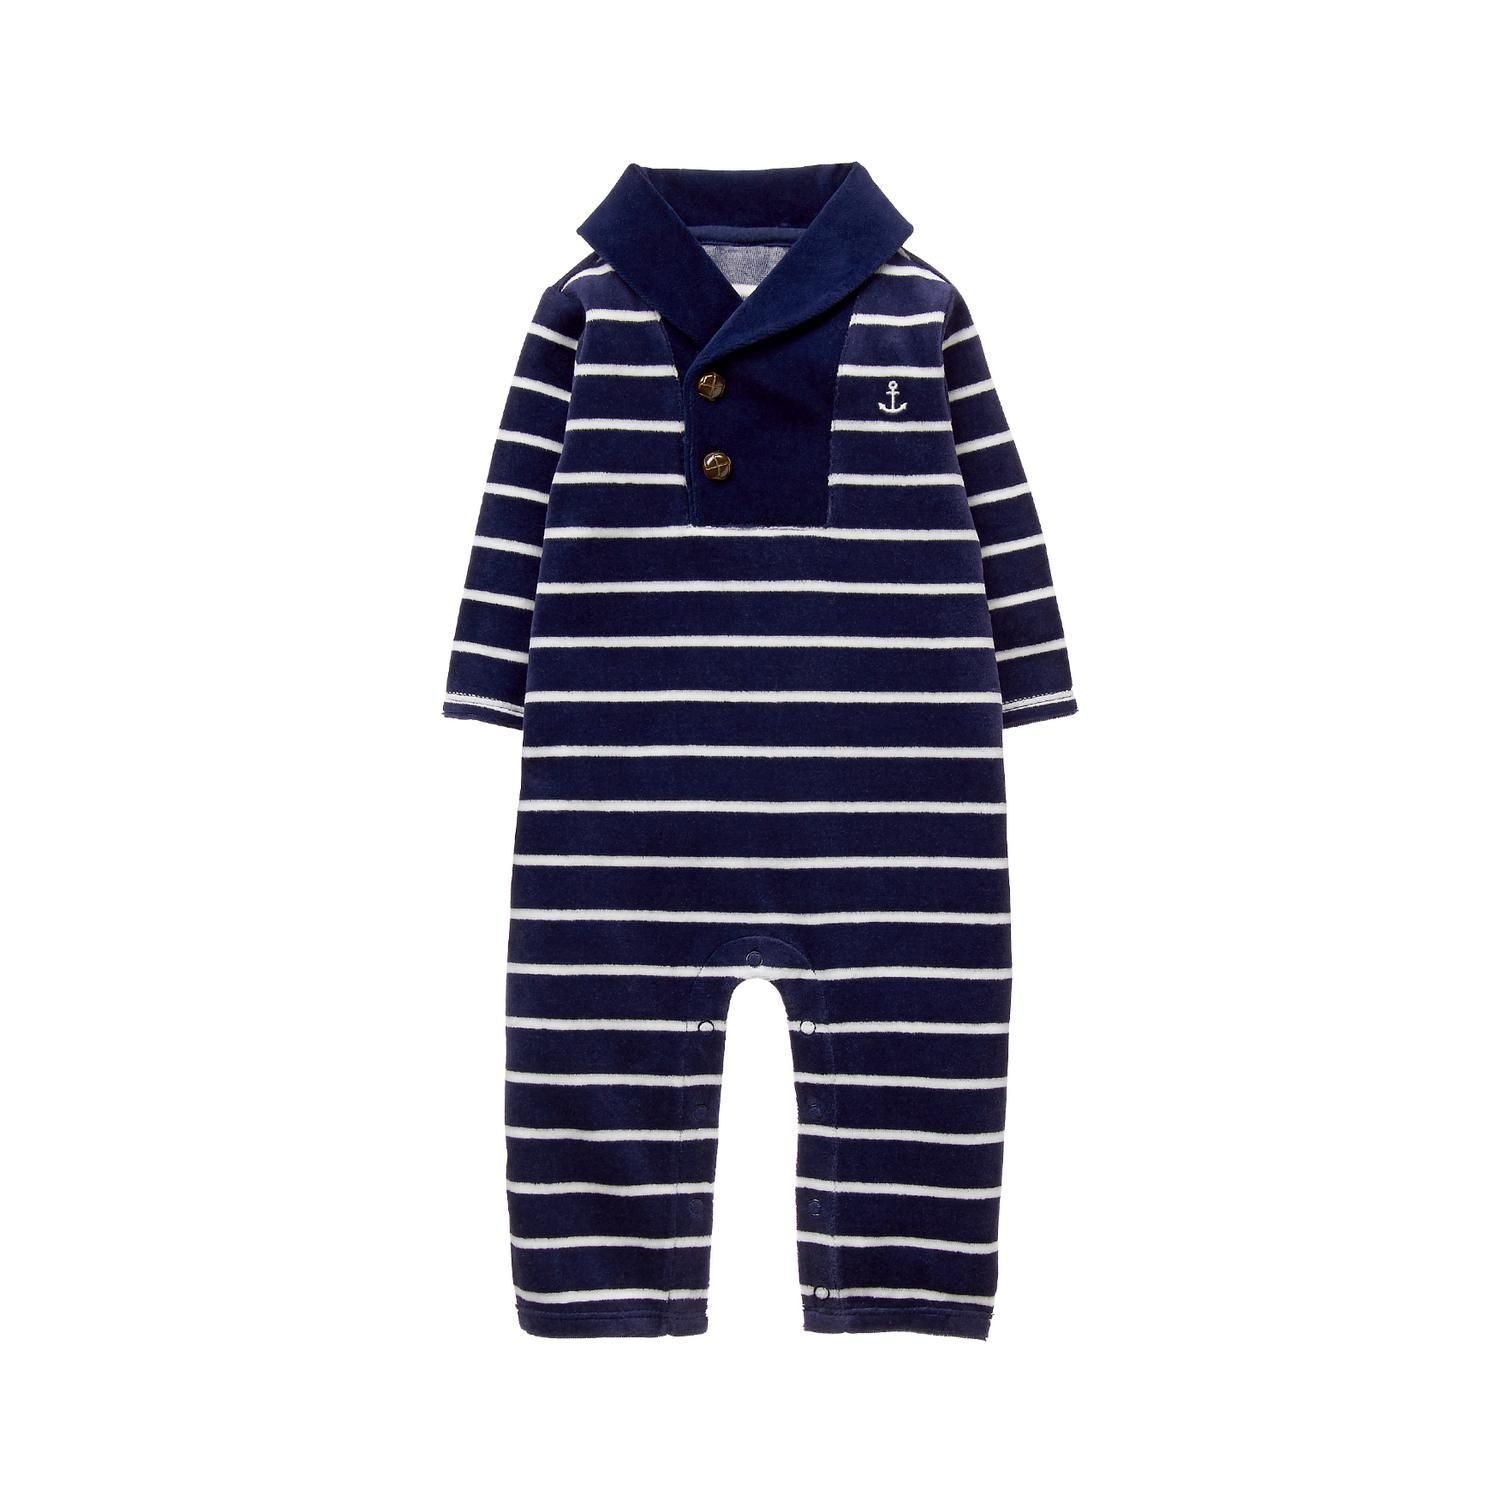 d40123366 Newborn Navy Stripe Striped Velvet 1-Piece by Janie and Jack ...